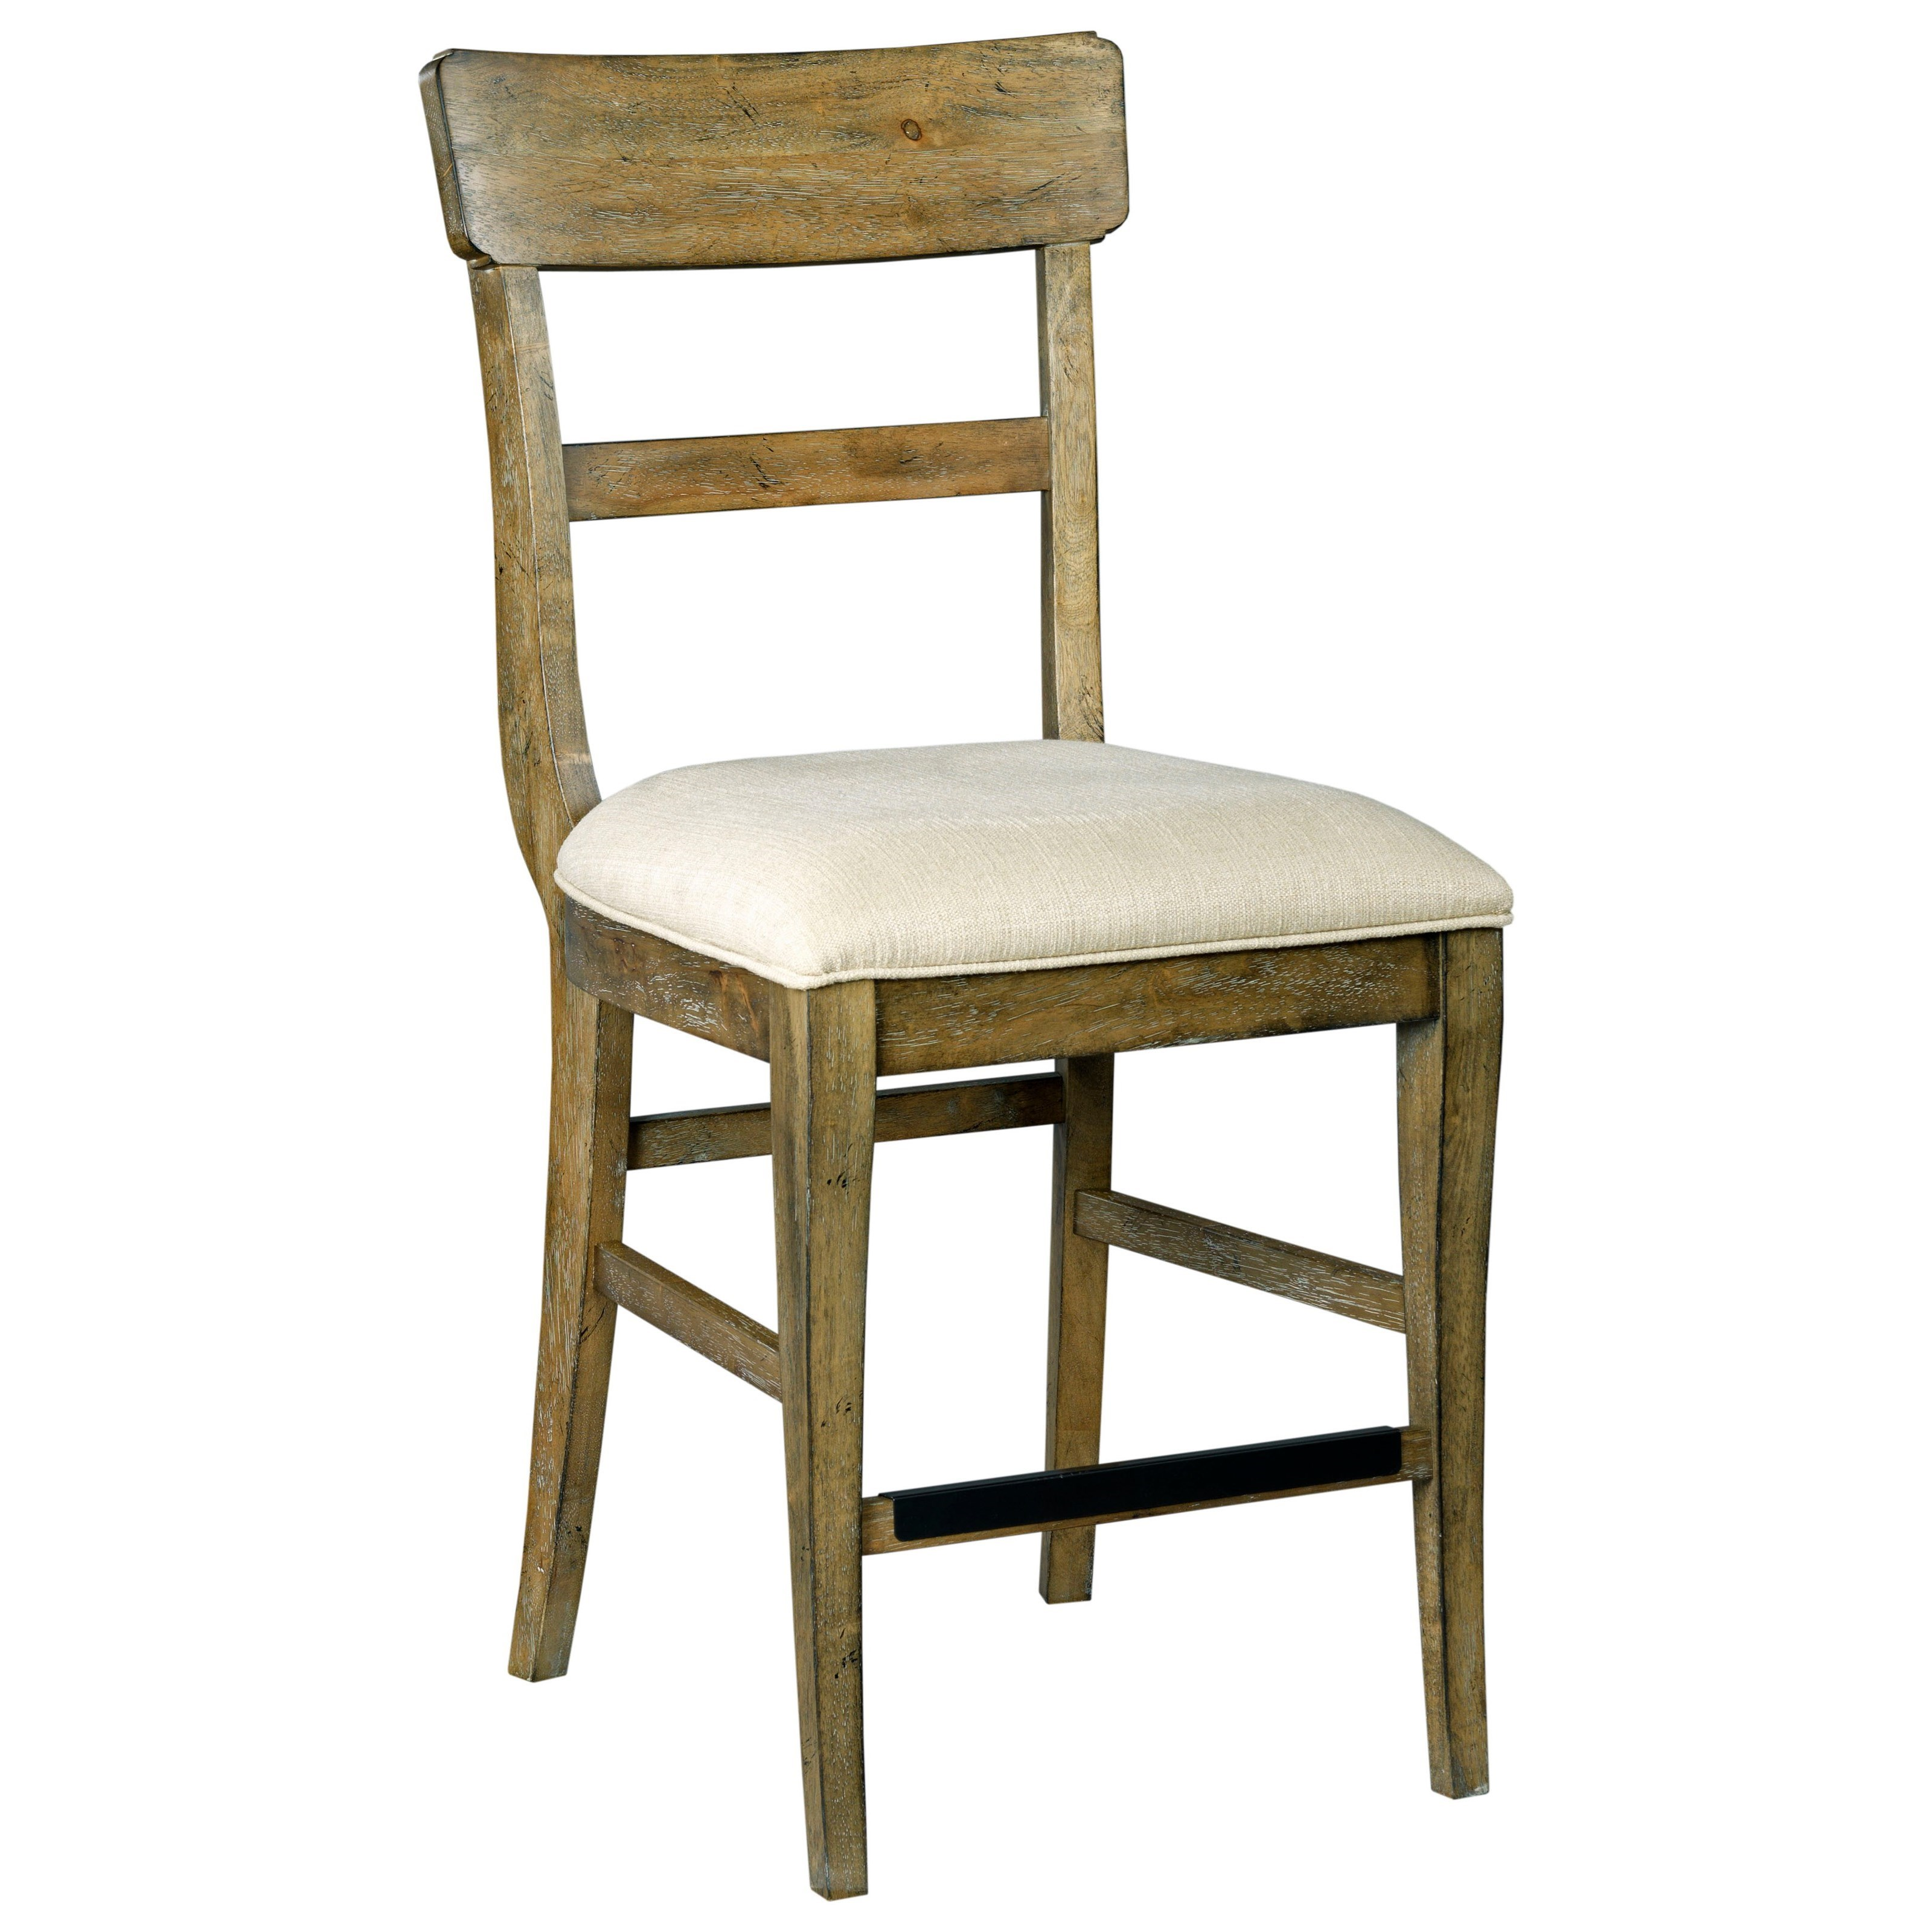 The Nook Counter Height Side Chair at Stoney Creek Furniture